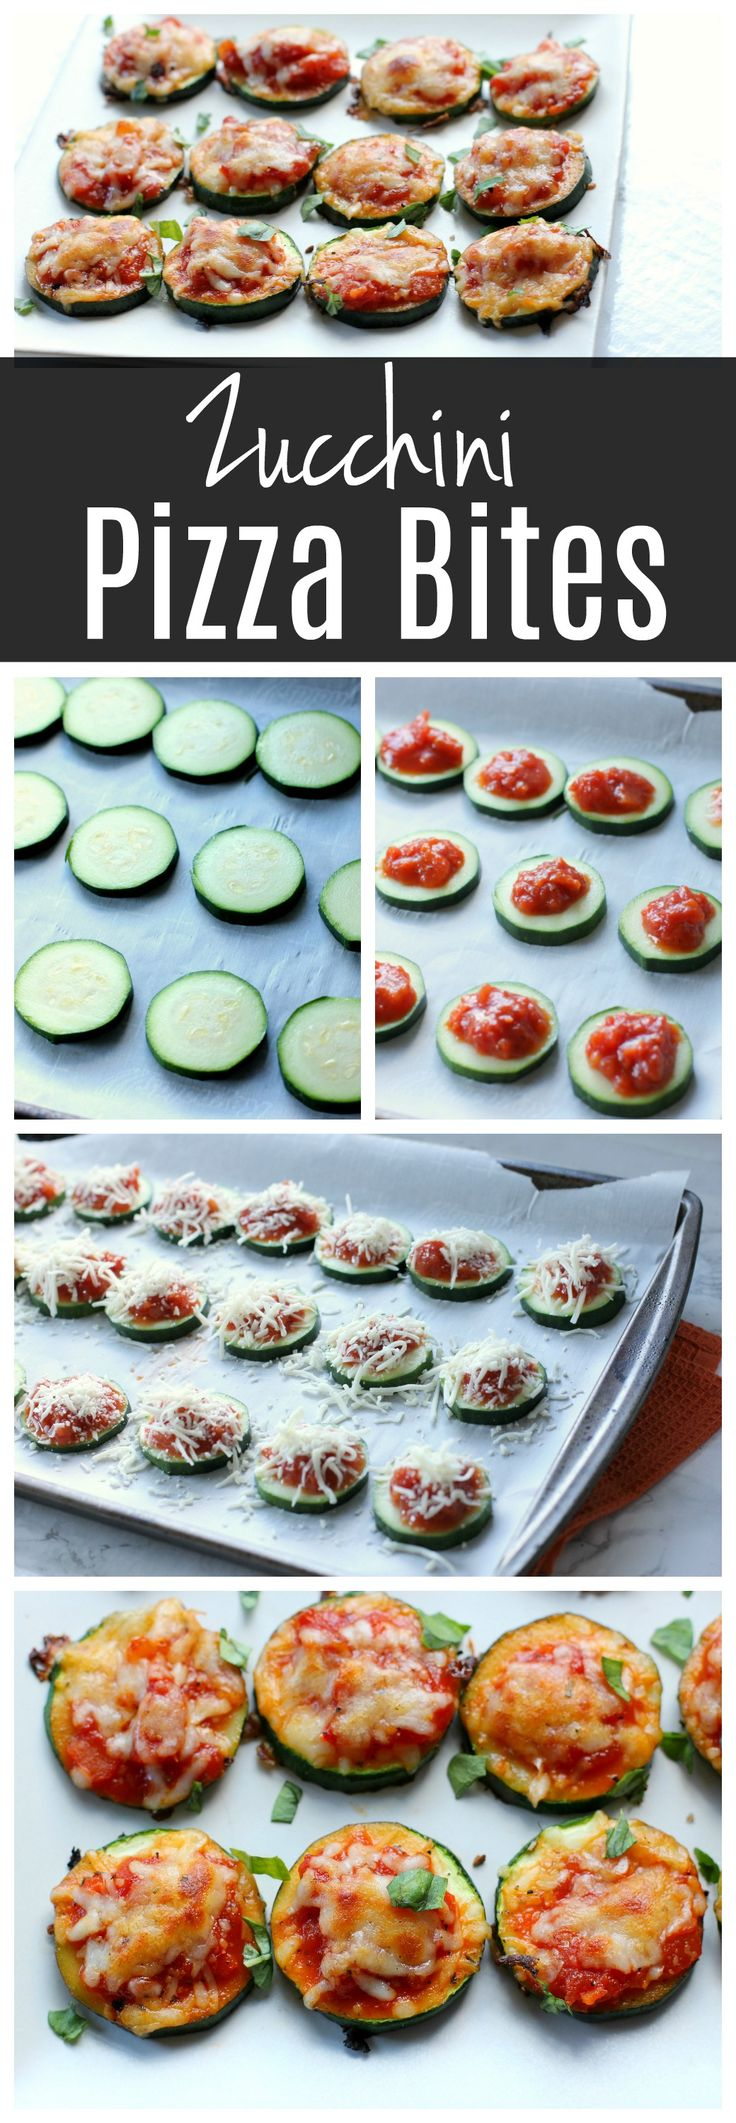 These zucchini pizza bites a healthy appetizer or dinner idea! Kids will love them and your can customize them with your favorite toppings!